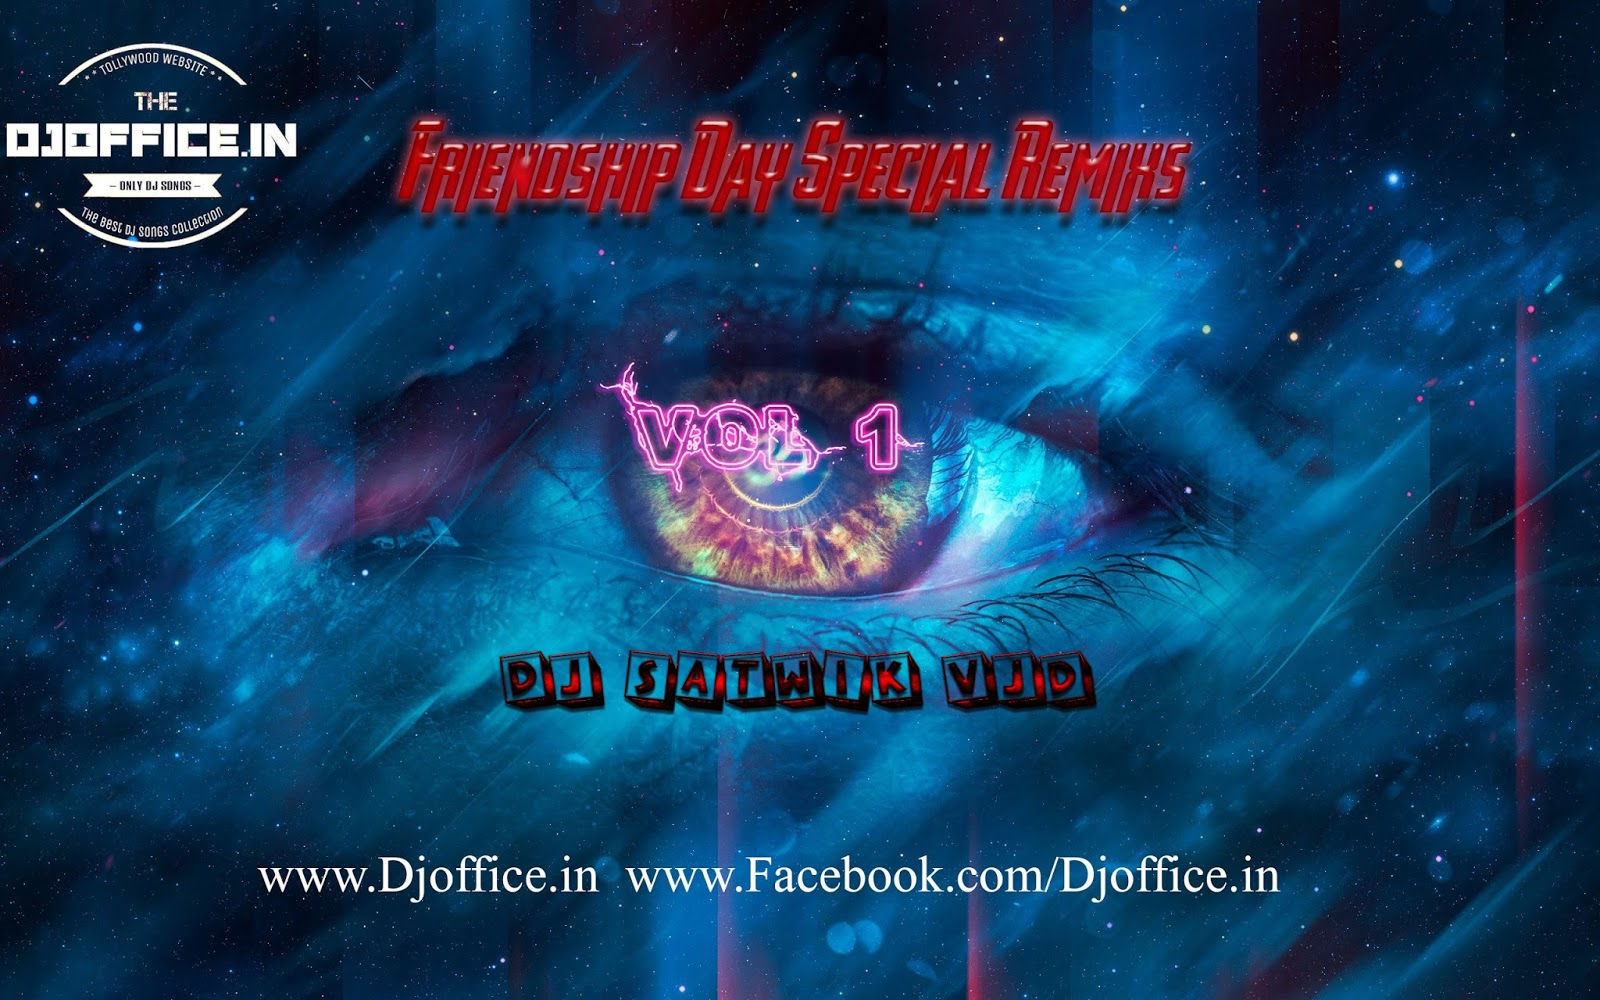 friendship day songs dj mix download